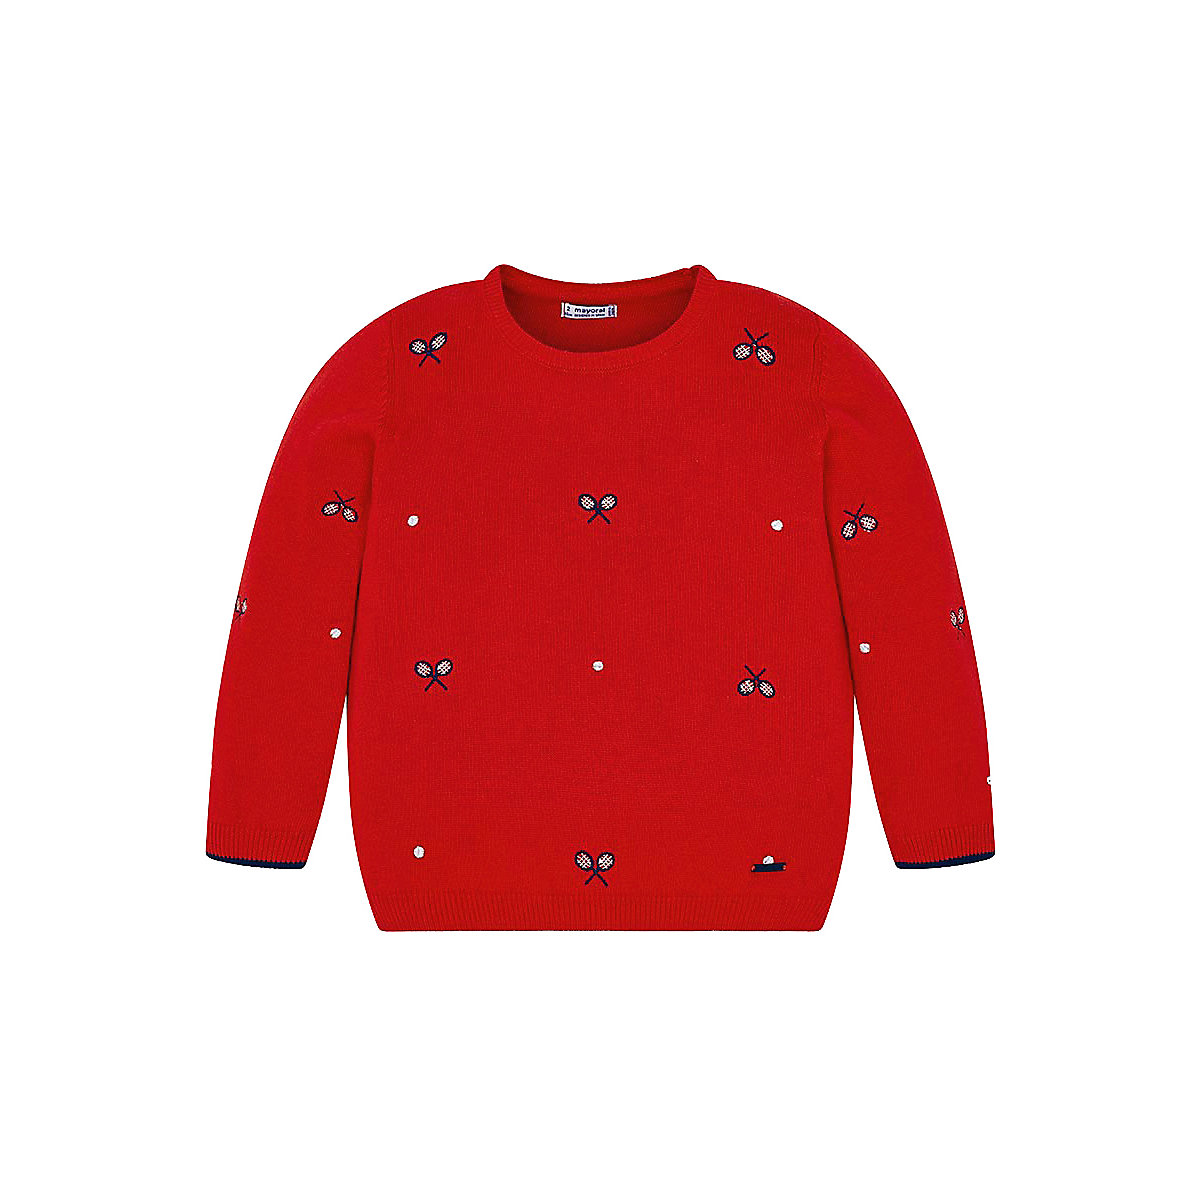 Фото - MAYORAL Sweaters 10689160 pullover jumper for boys and girls jackets Boys mayoral sweaters 10692403 pullover jumper for boys and girls jackets boys